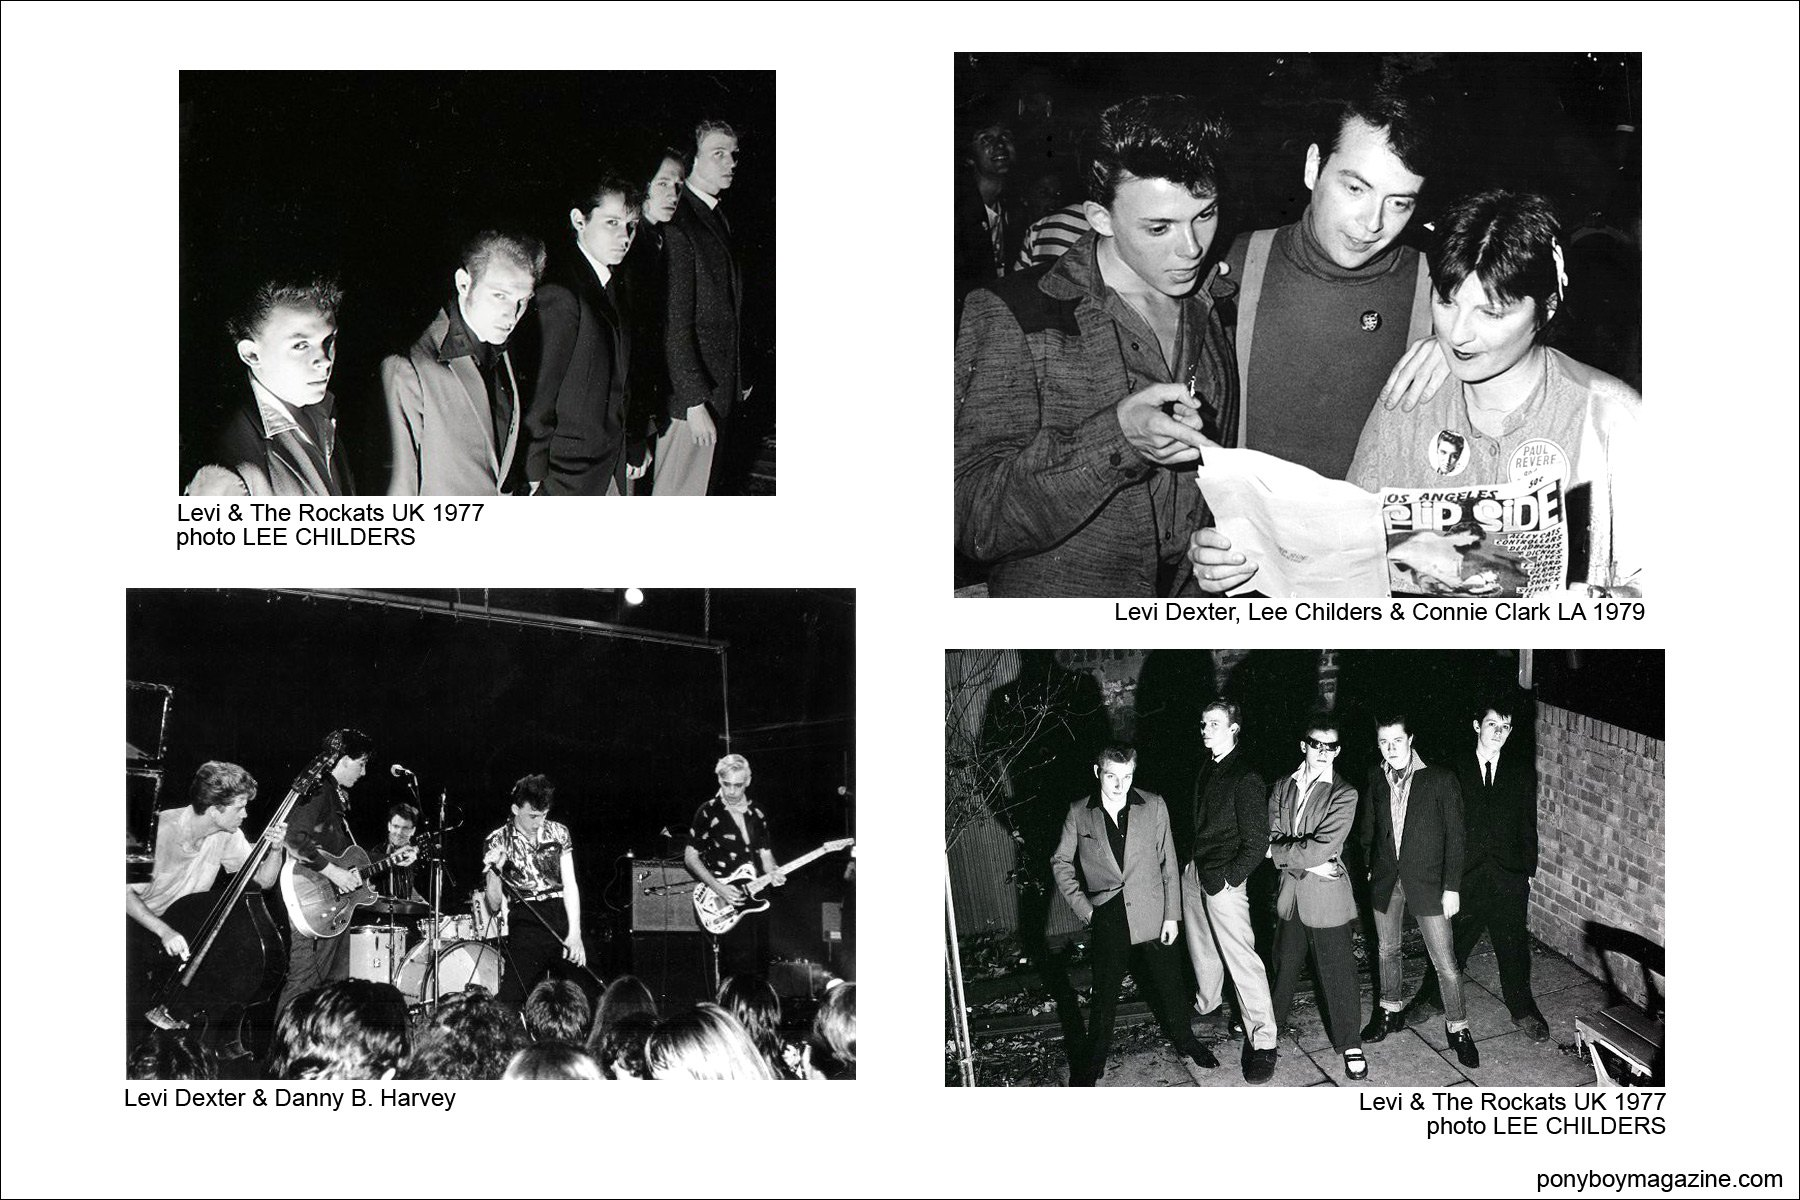 Various old b&w photos of Levi and The Rockats, Ponyboy Magazine.